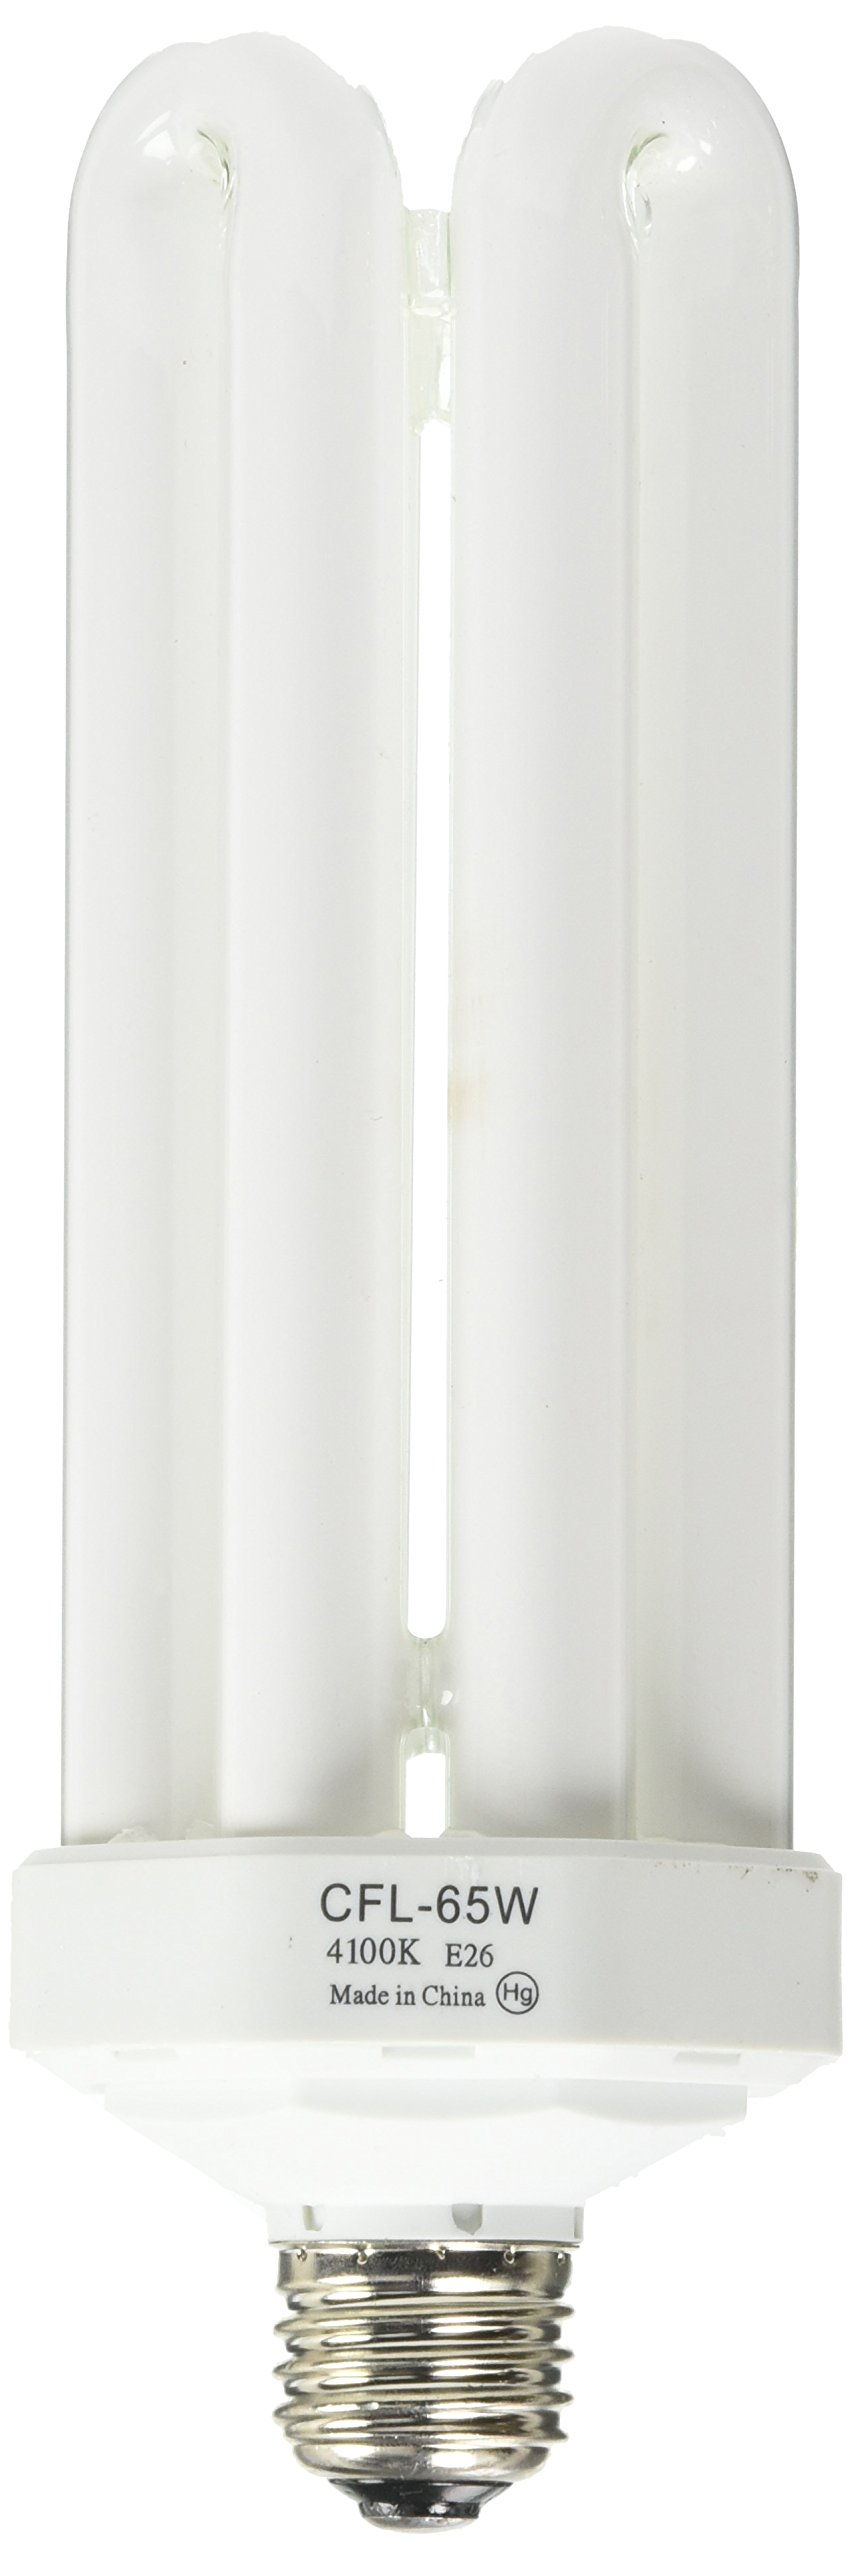 Lithonia Cfl Bulb Med Base 65 W 3900 Lumens 4100 K Bx by Lithonia Lighting (Image #1)